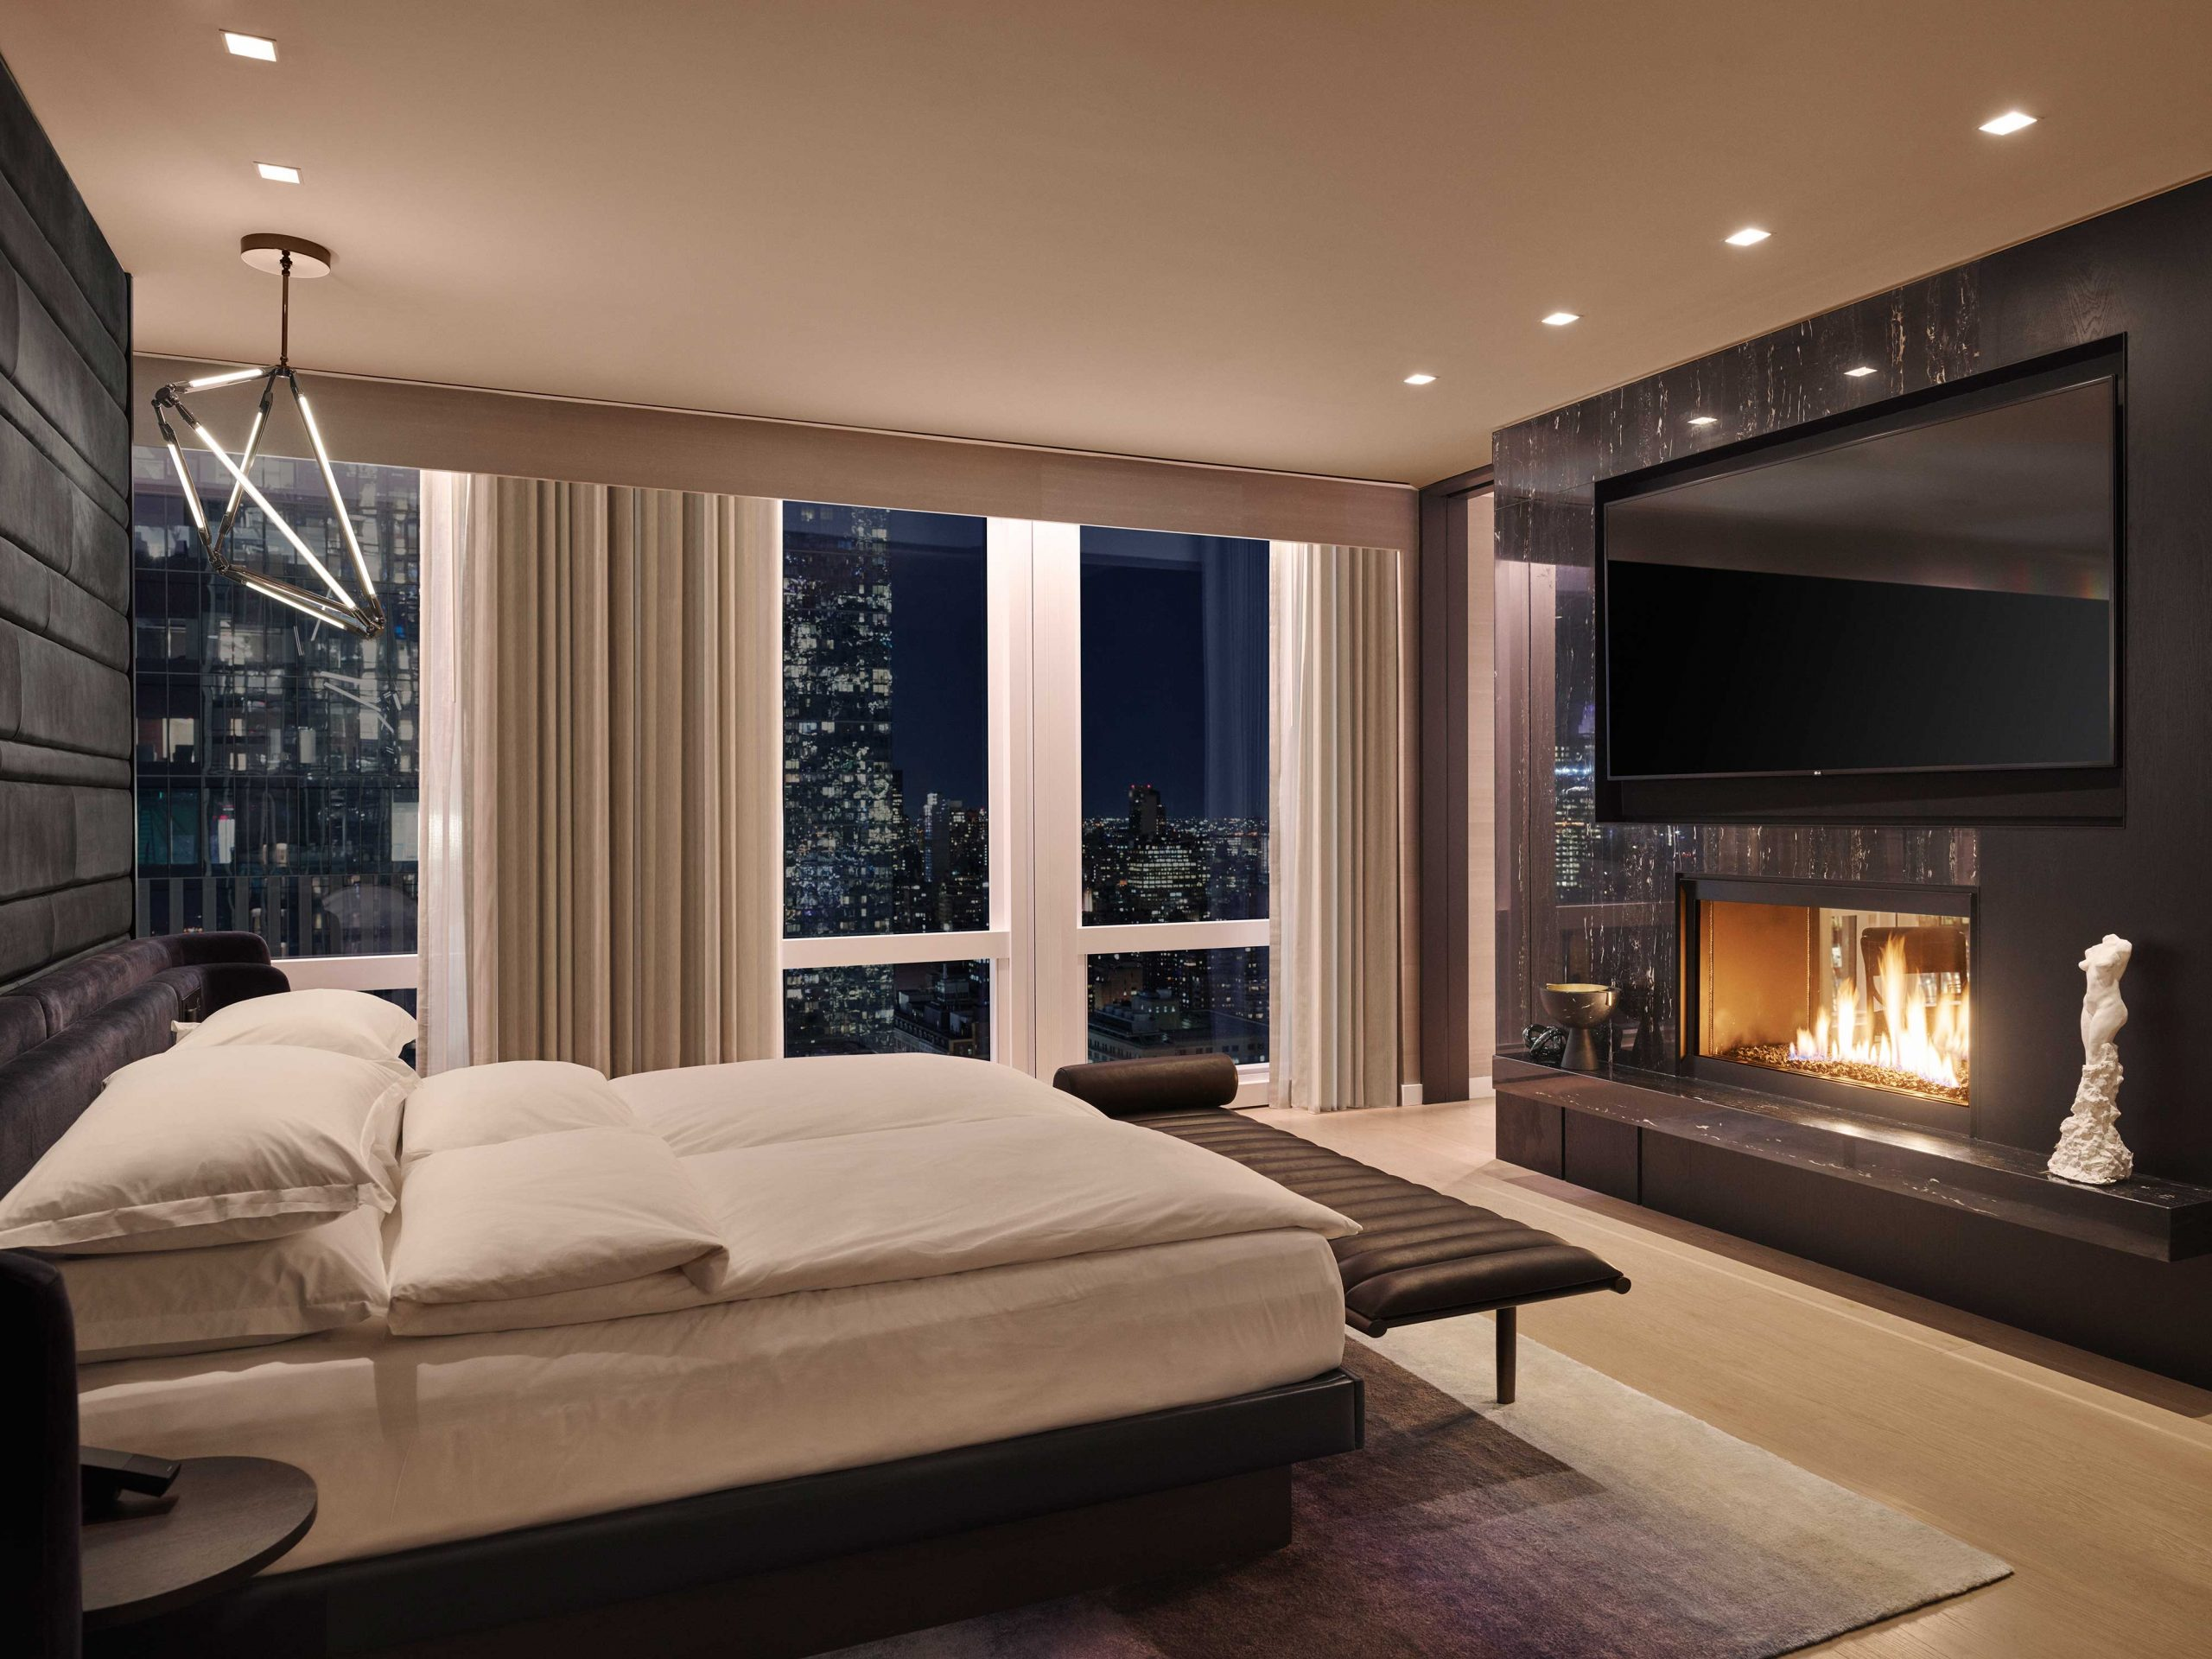 equinoxsuite-bedroom-fireplace-scaled